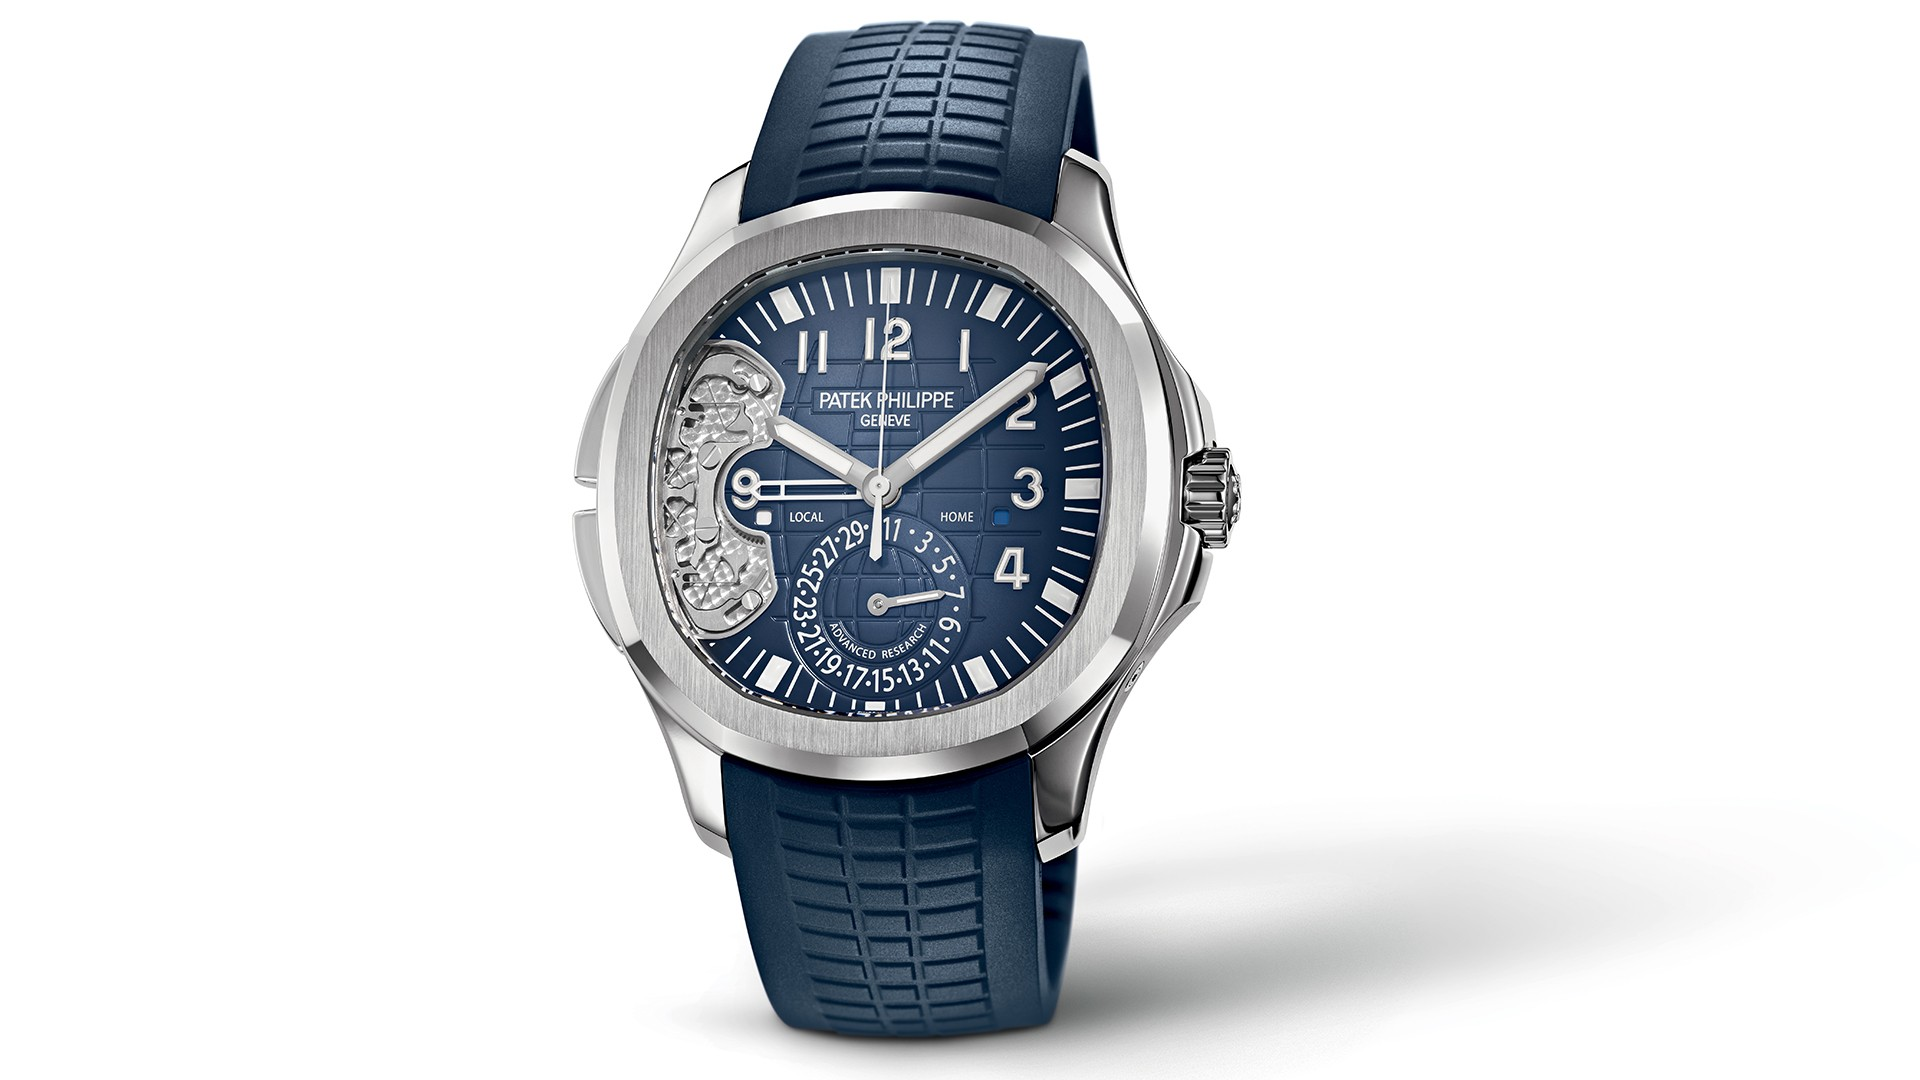 Patek Philippe 5650G watch silicon movement